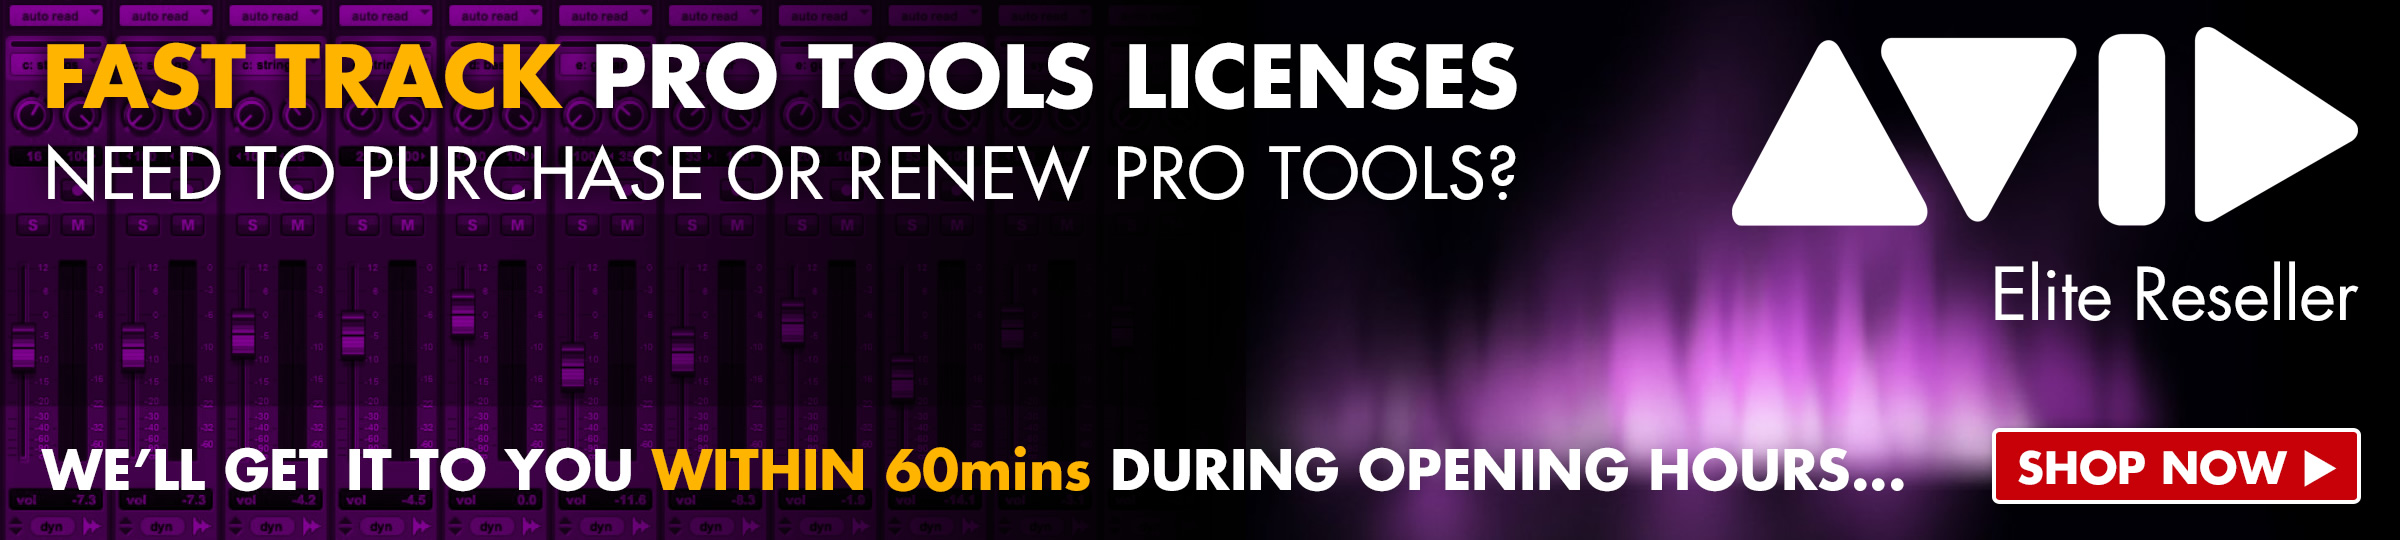 Fast Track Pro Tools Licenses